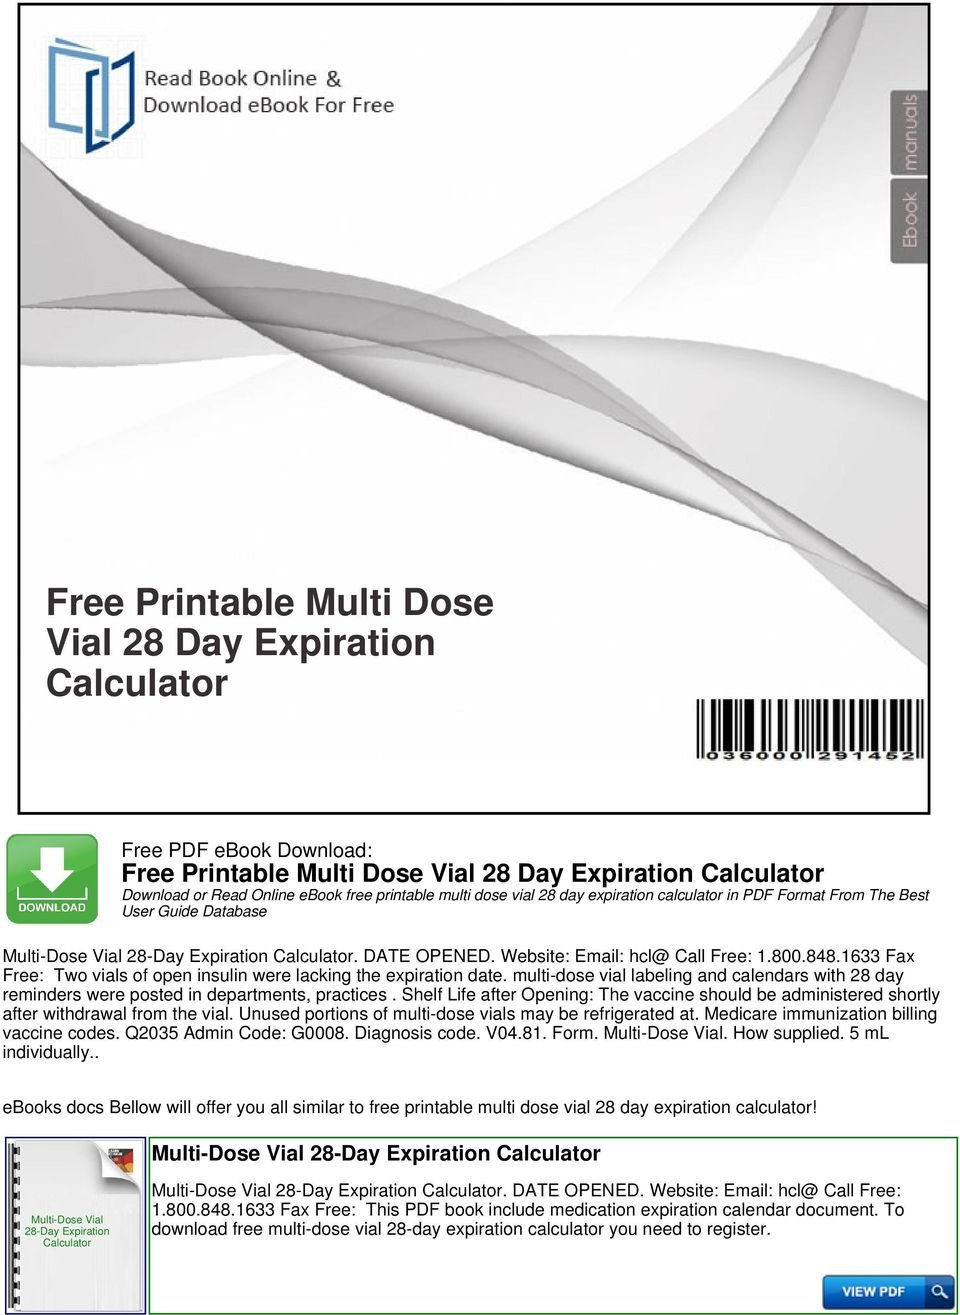 Free Printable Multi Dose Vial 28 Day Expiration Calculator 28 Days Medication Expiration Calender For March